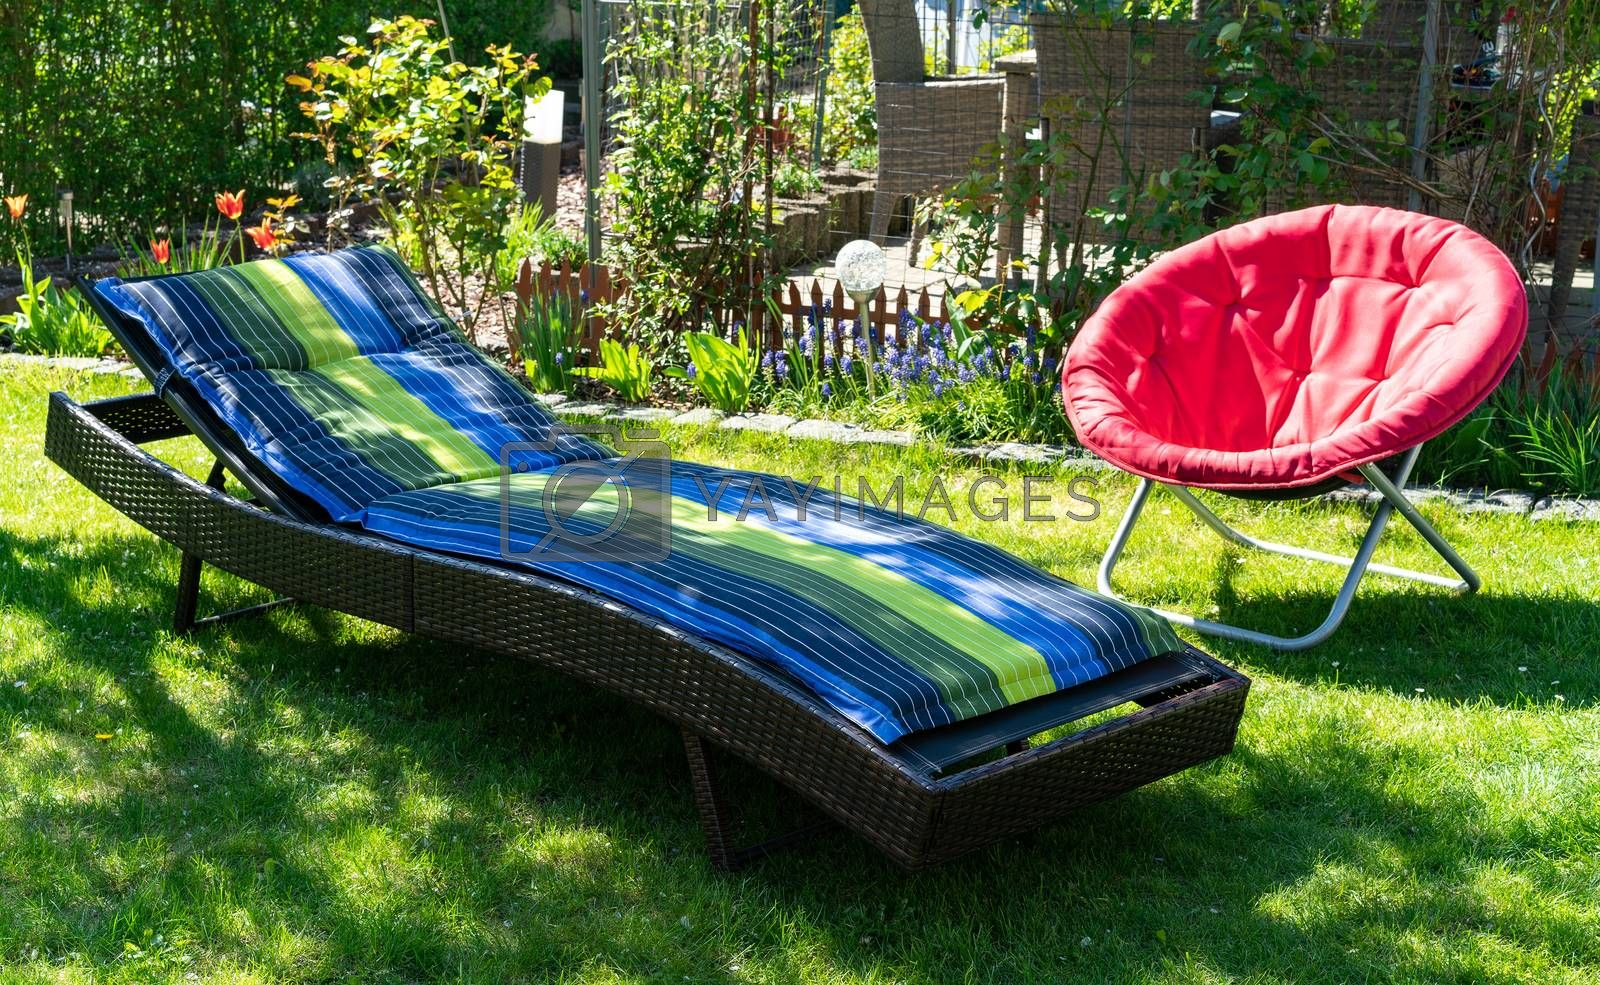 A blue and green colored sun lounger and a red round red folding moon chair in a green garden standing in the sun during spring time..